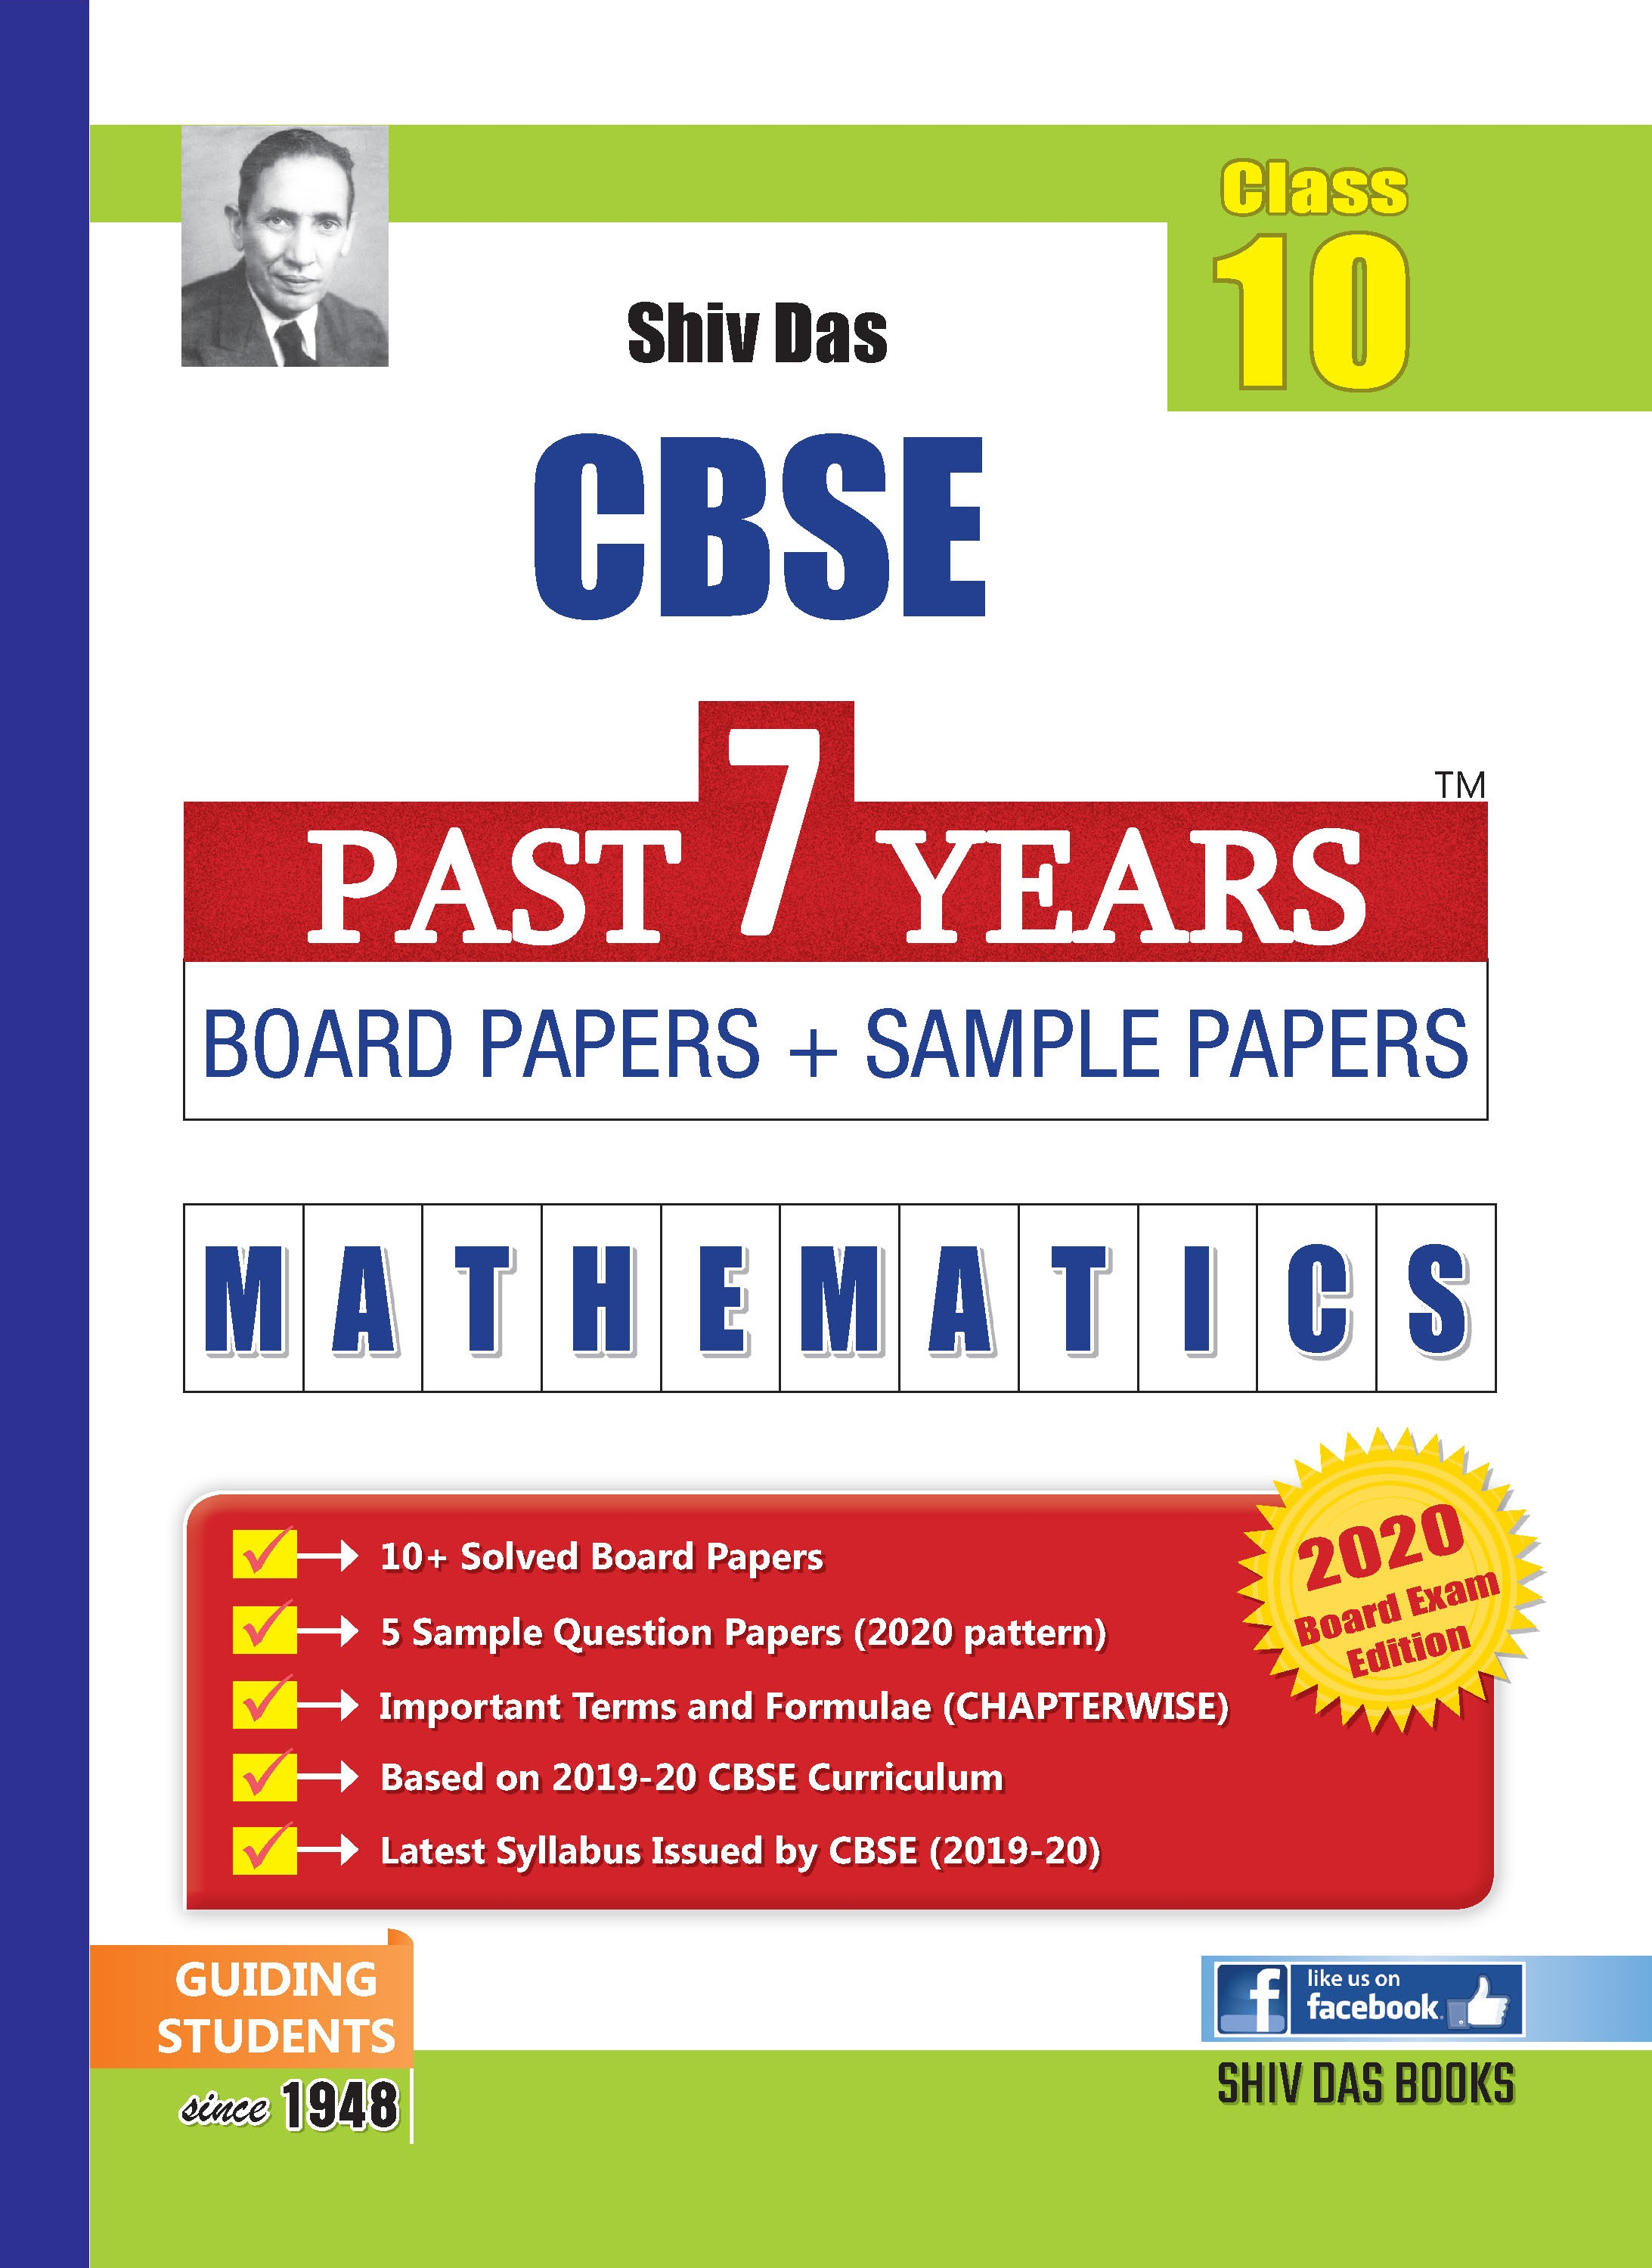 CBSE Past 7 Years Board Papers+Sample Papers Series, Books , Buy